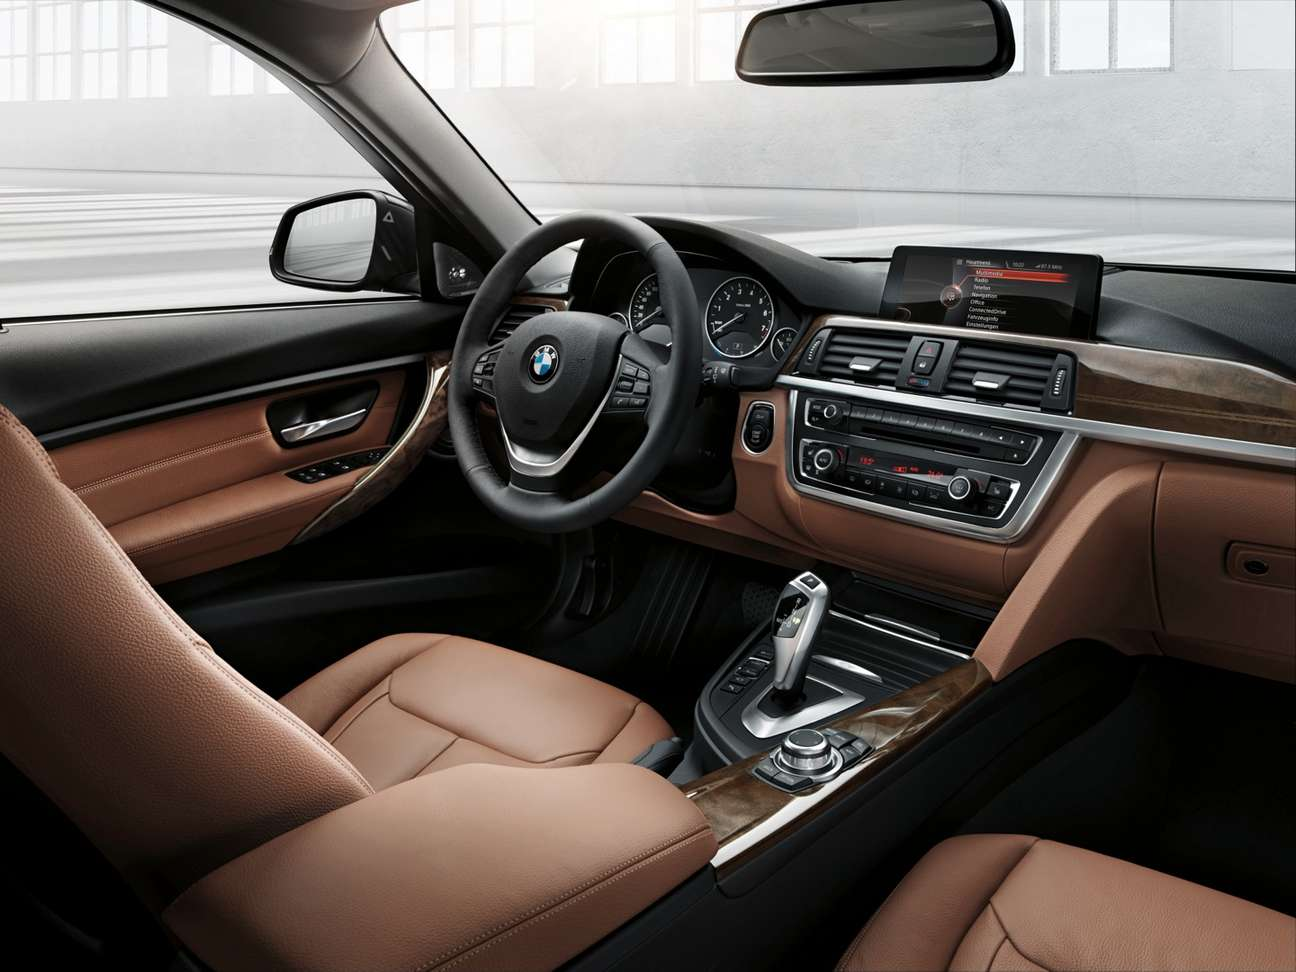 BMW 3 Series Touring #7503372